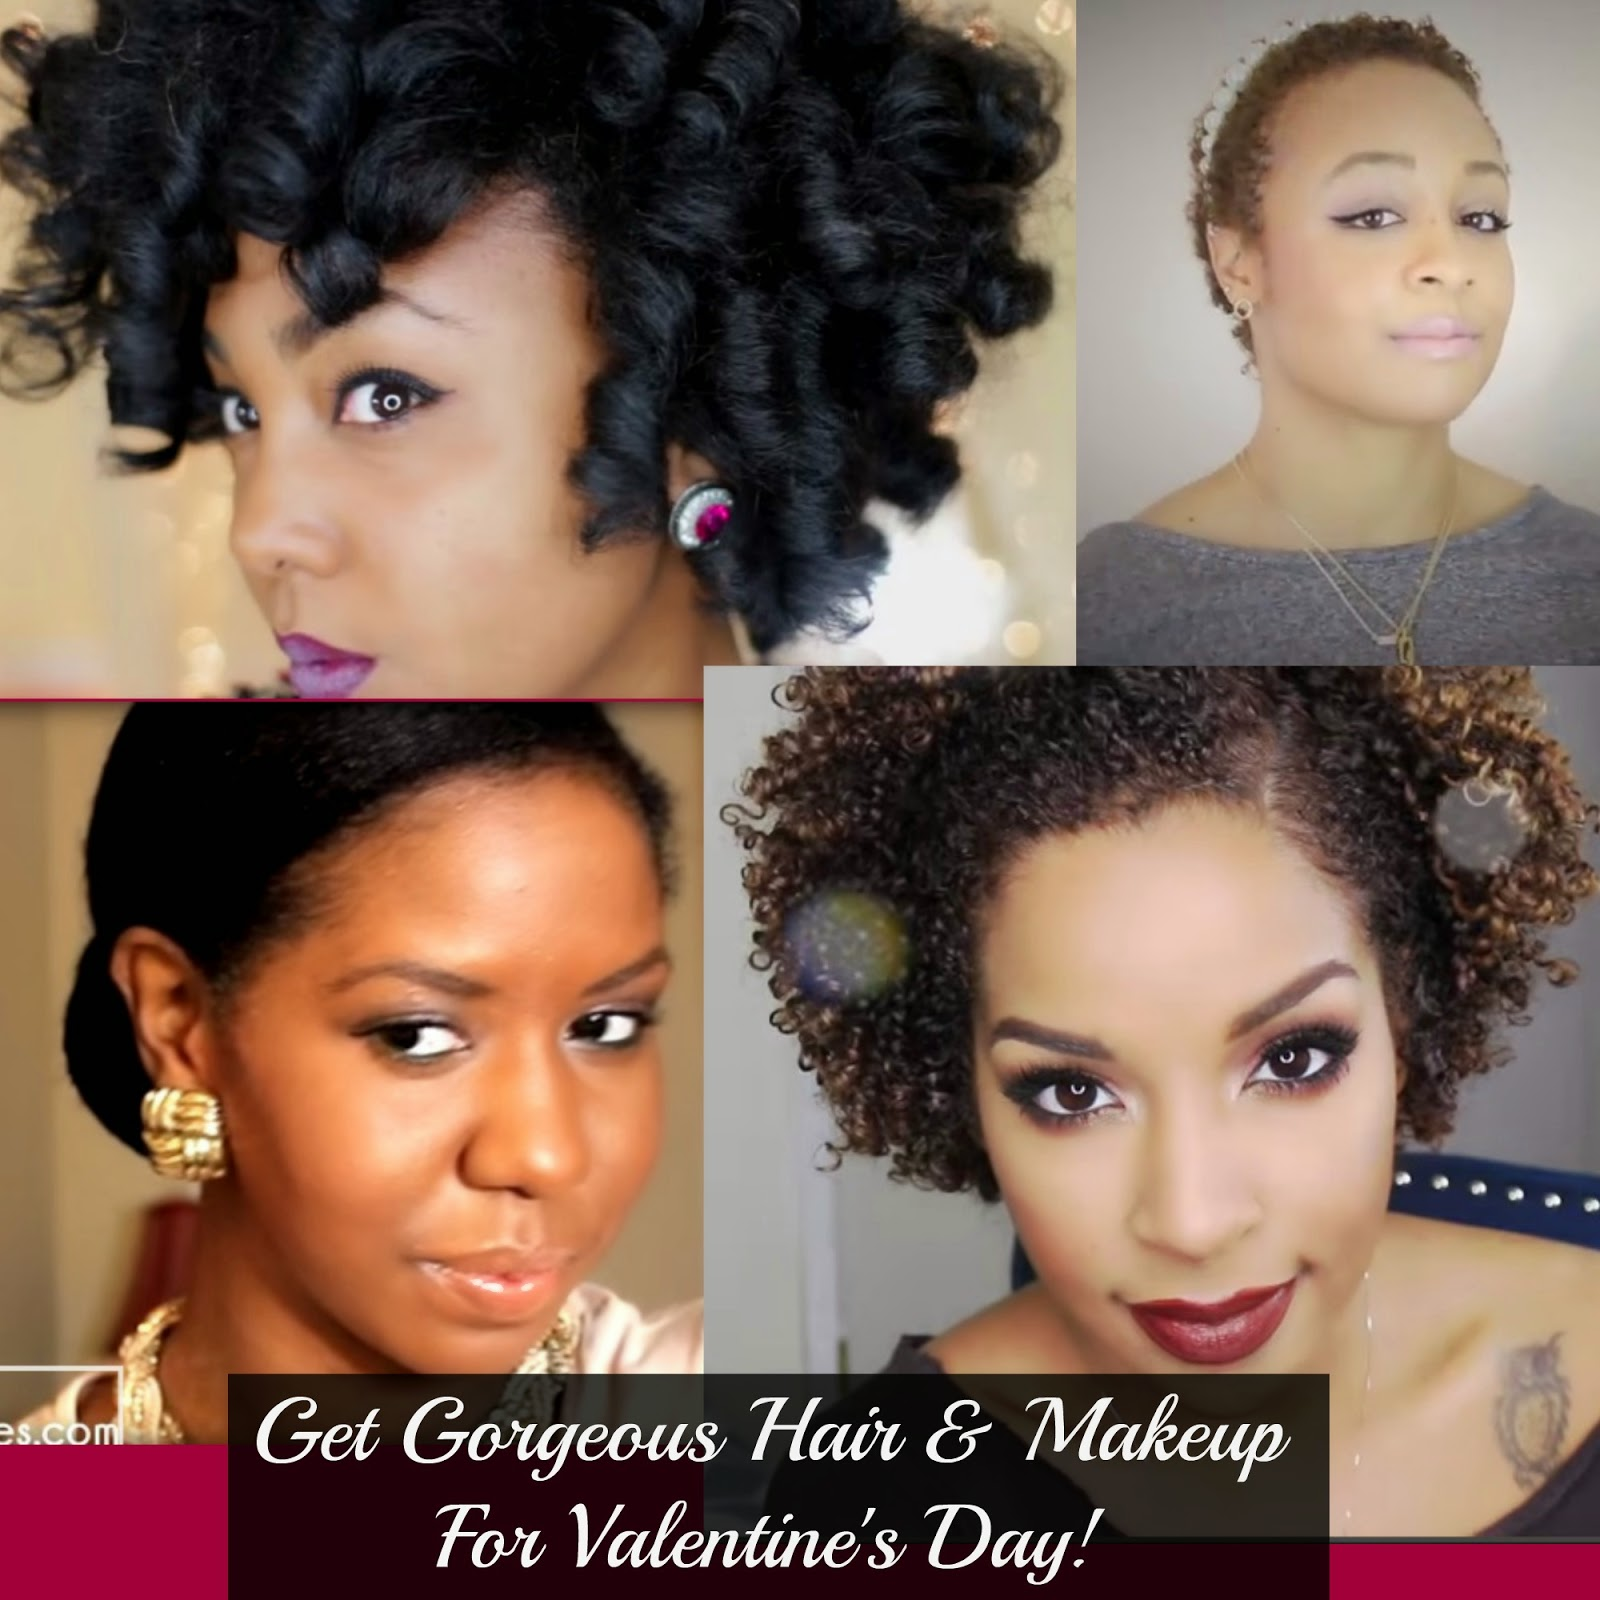 Get Gorgeous Hair & Makeup For Valentine's Day!